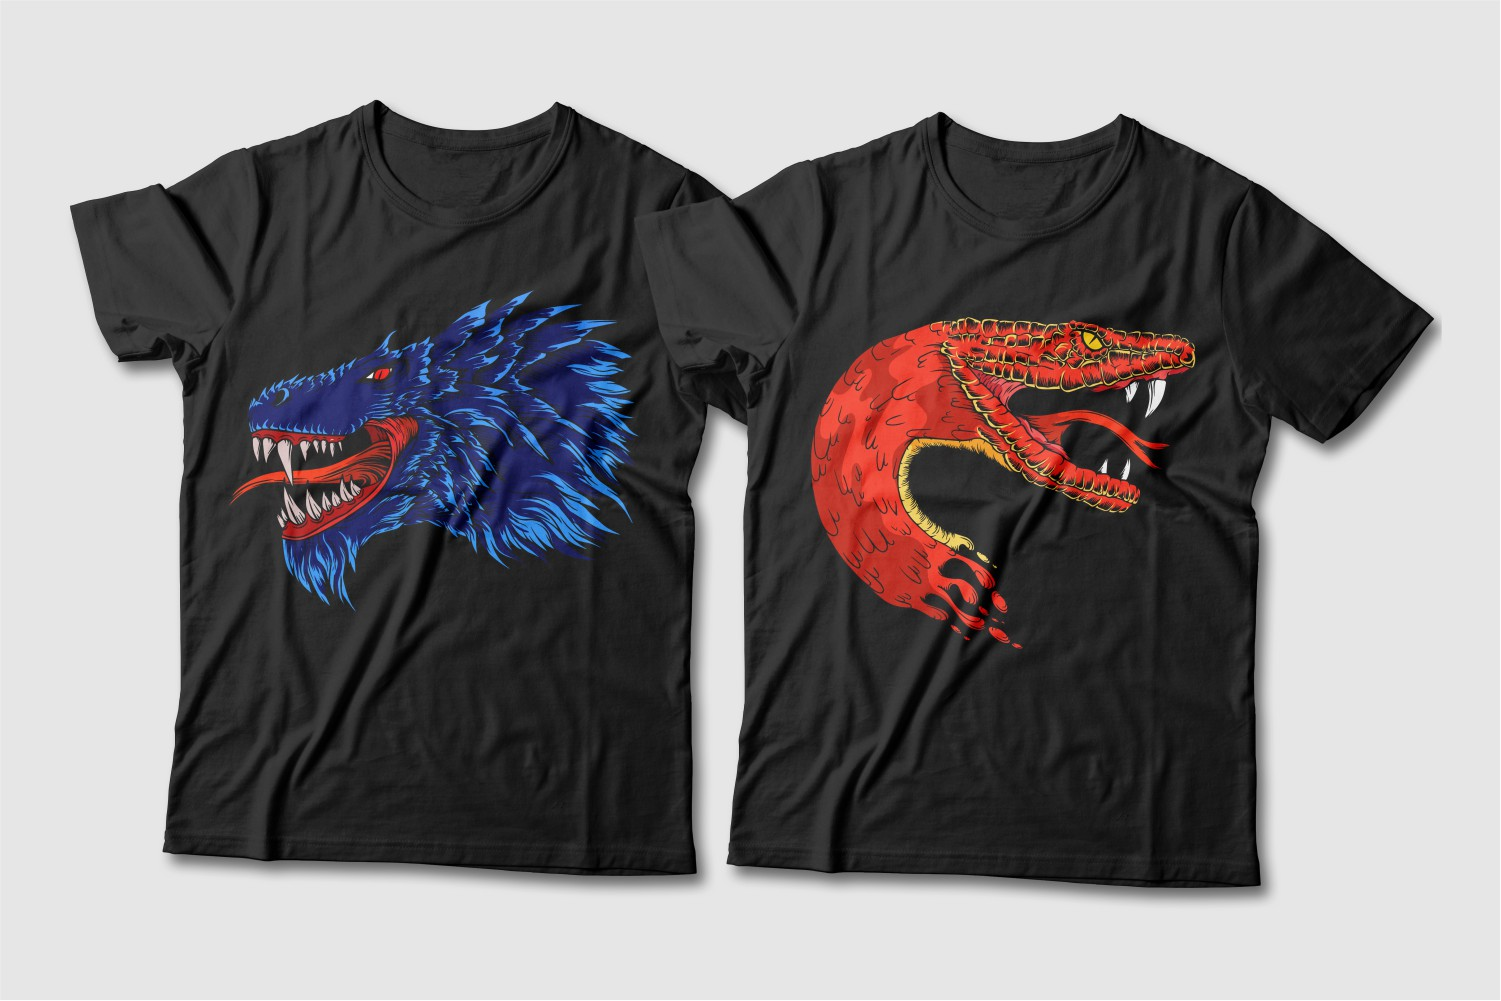 Black T-shirts featuring a dragon and a red serpent crew neck.